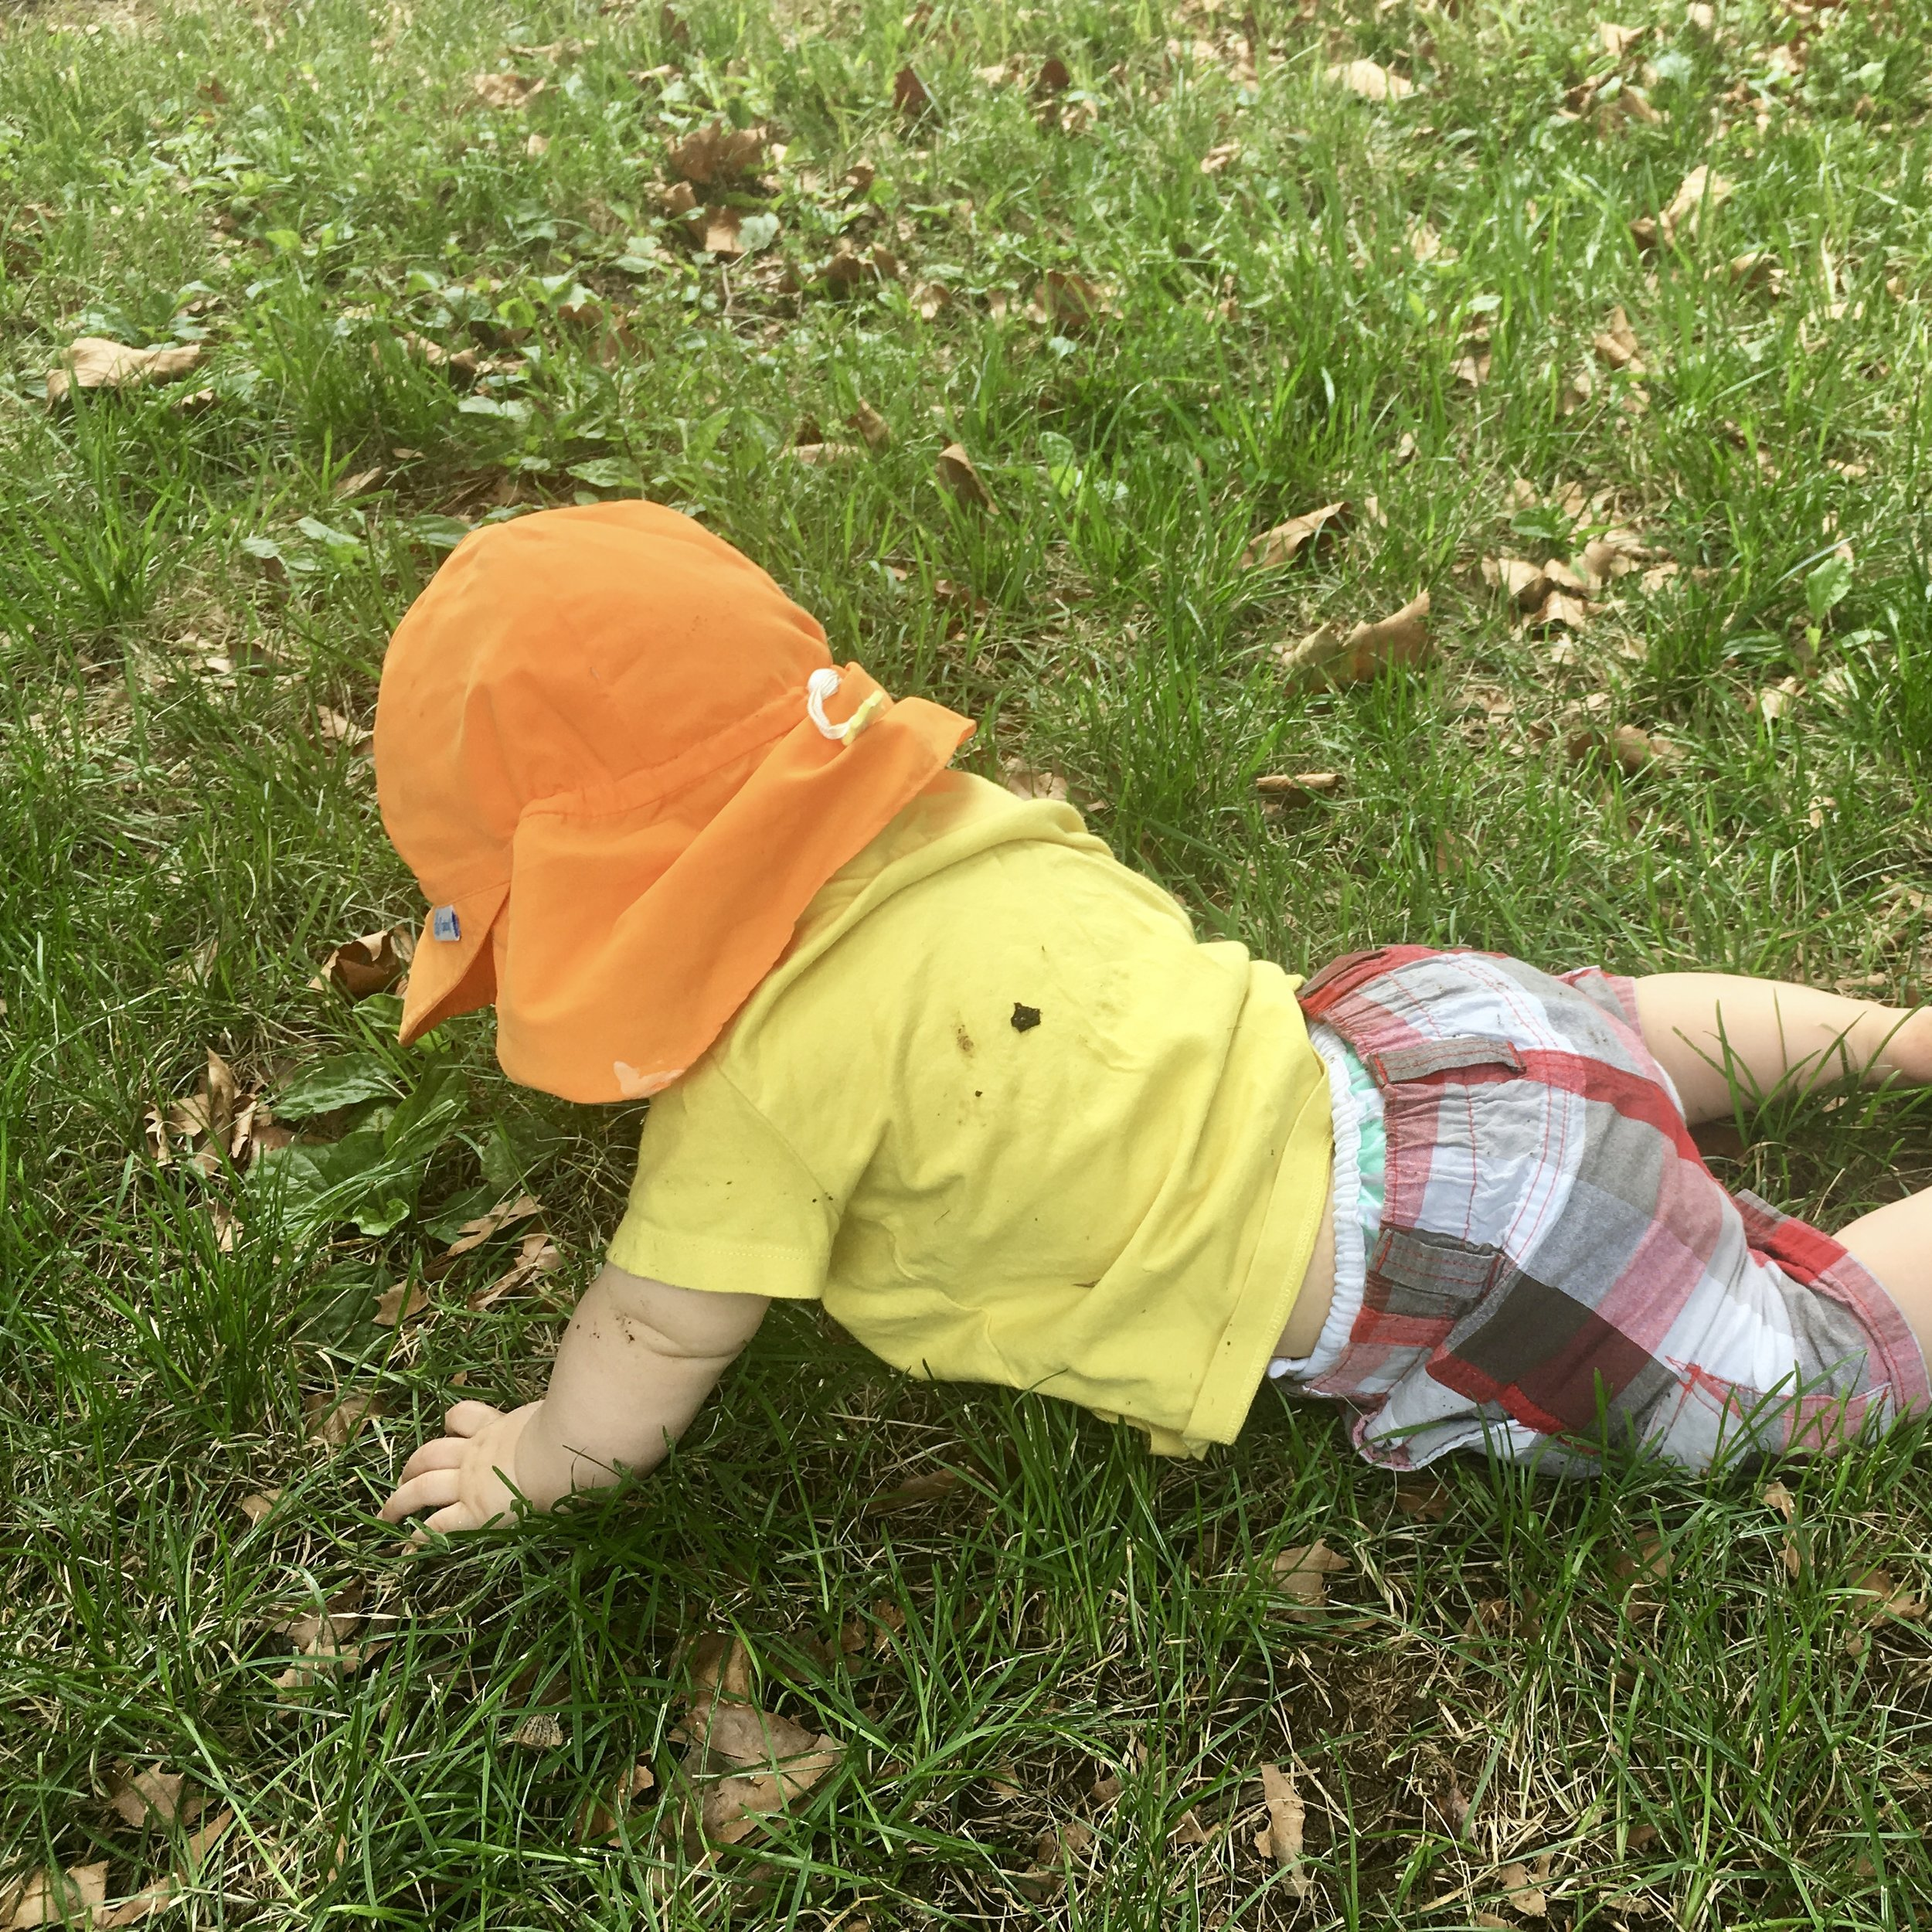 Image: a baby in an orange sun hat crawls in the grass and fallen leaves.